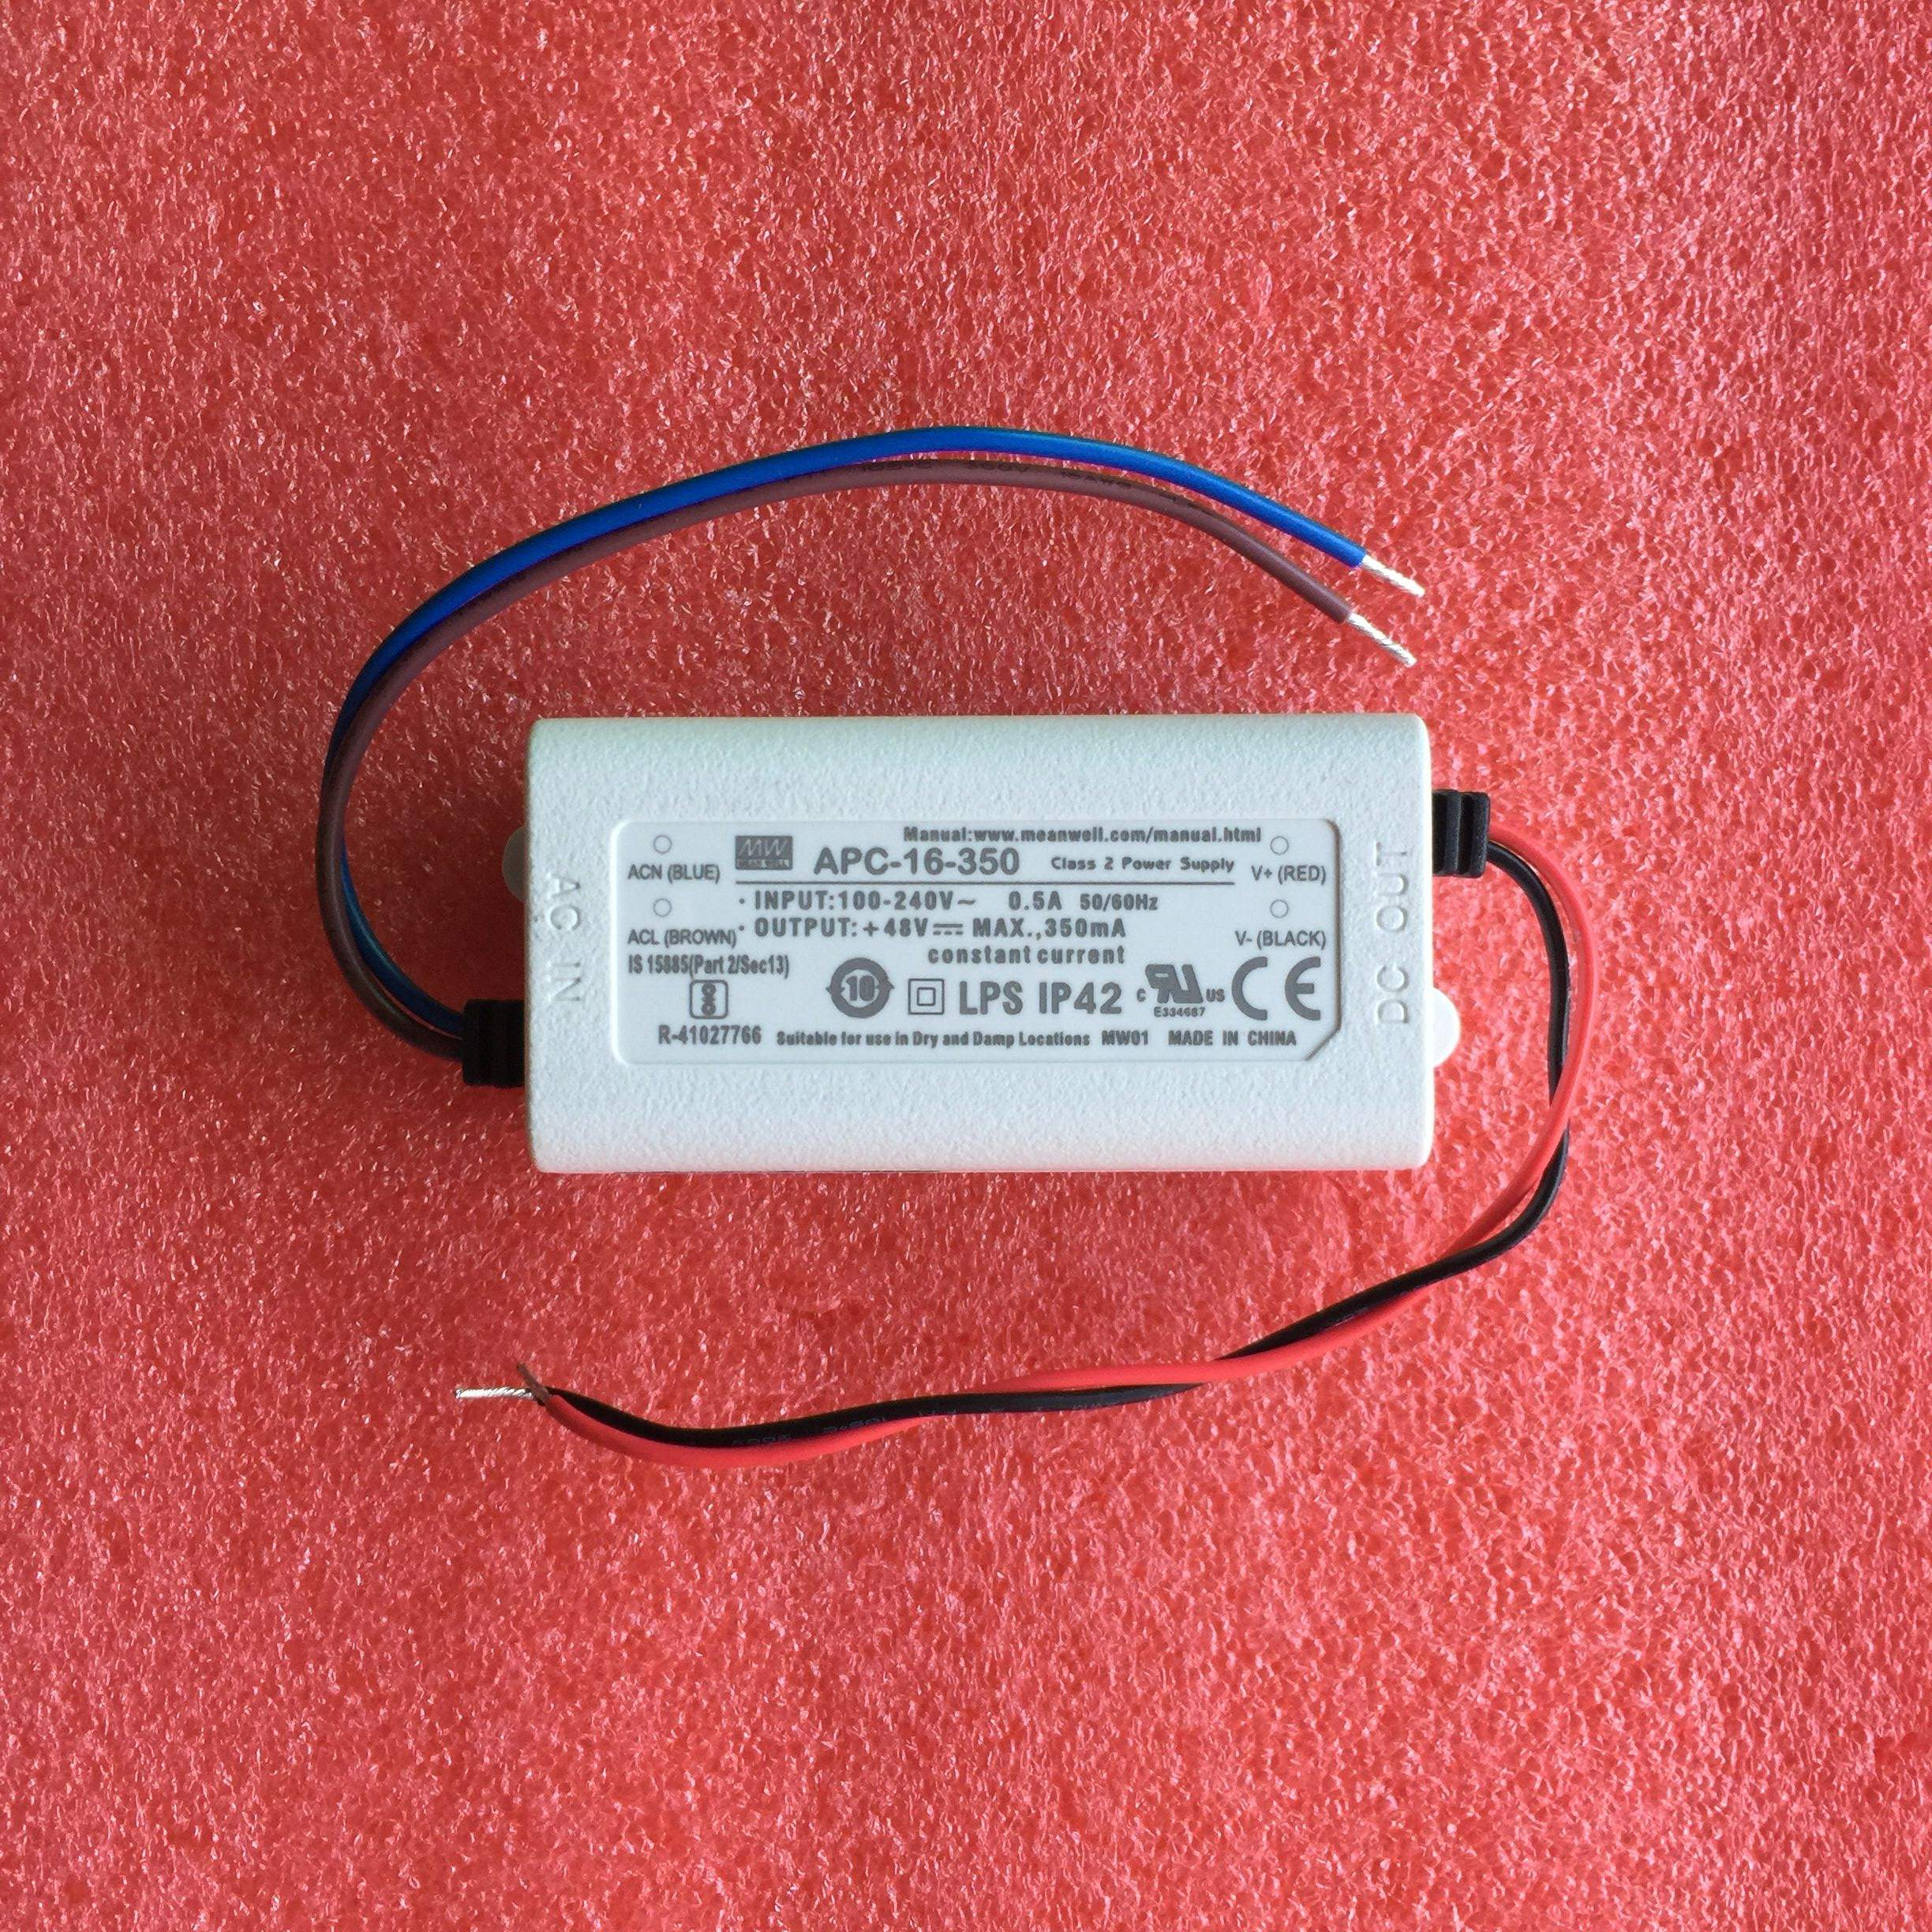 APC-16-350 Meanwell switching power supply constant current IP42 LED 16.8W 12-48V 350mA factory direct sales 2 years warranty